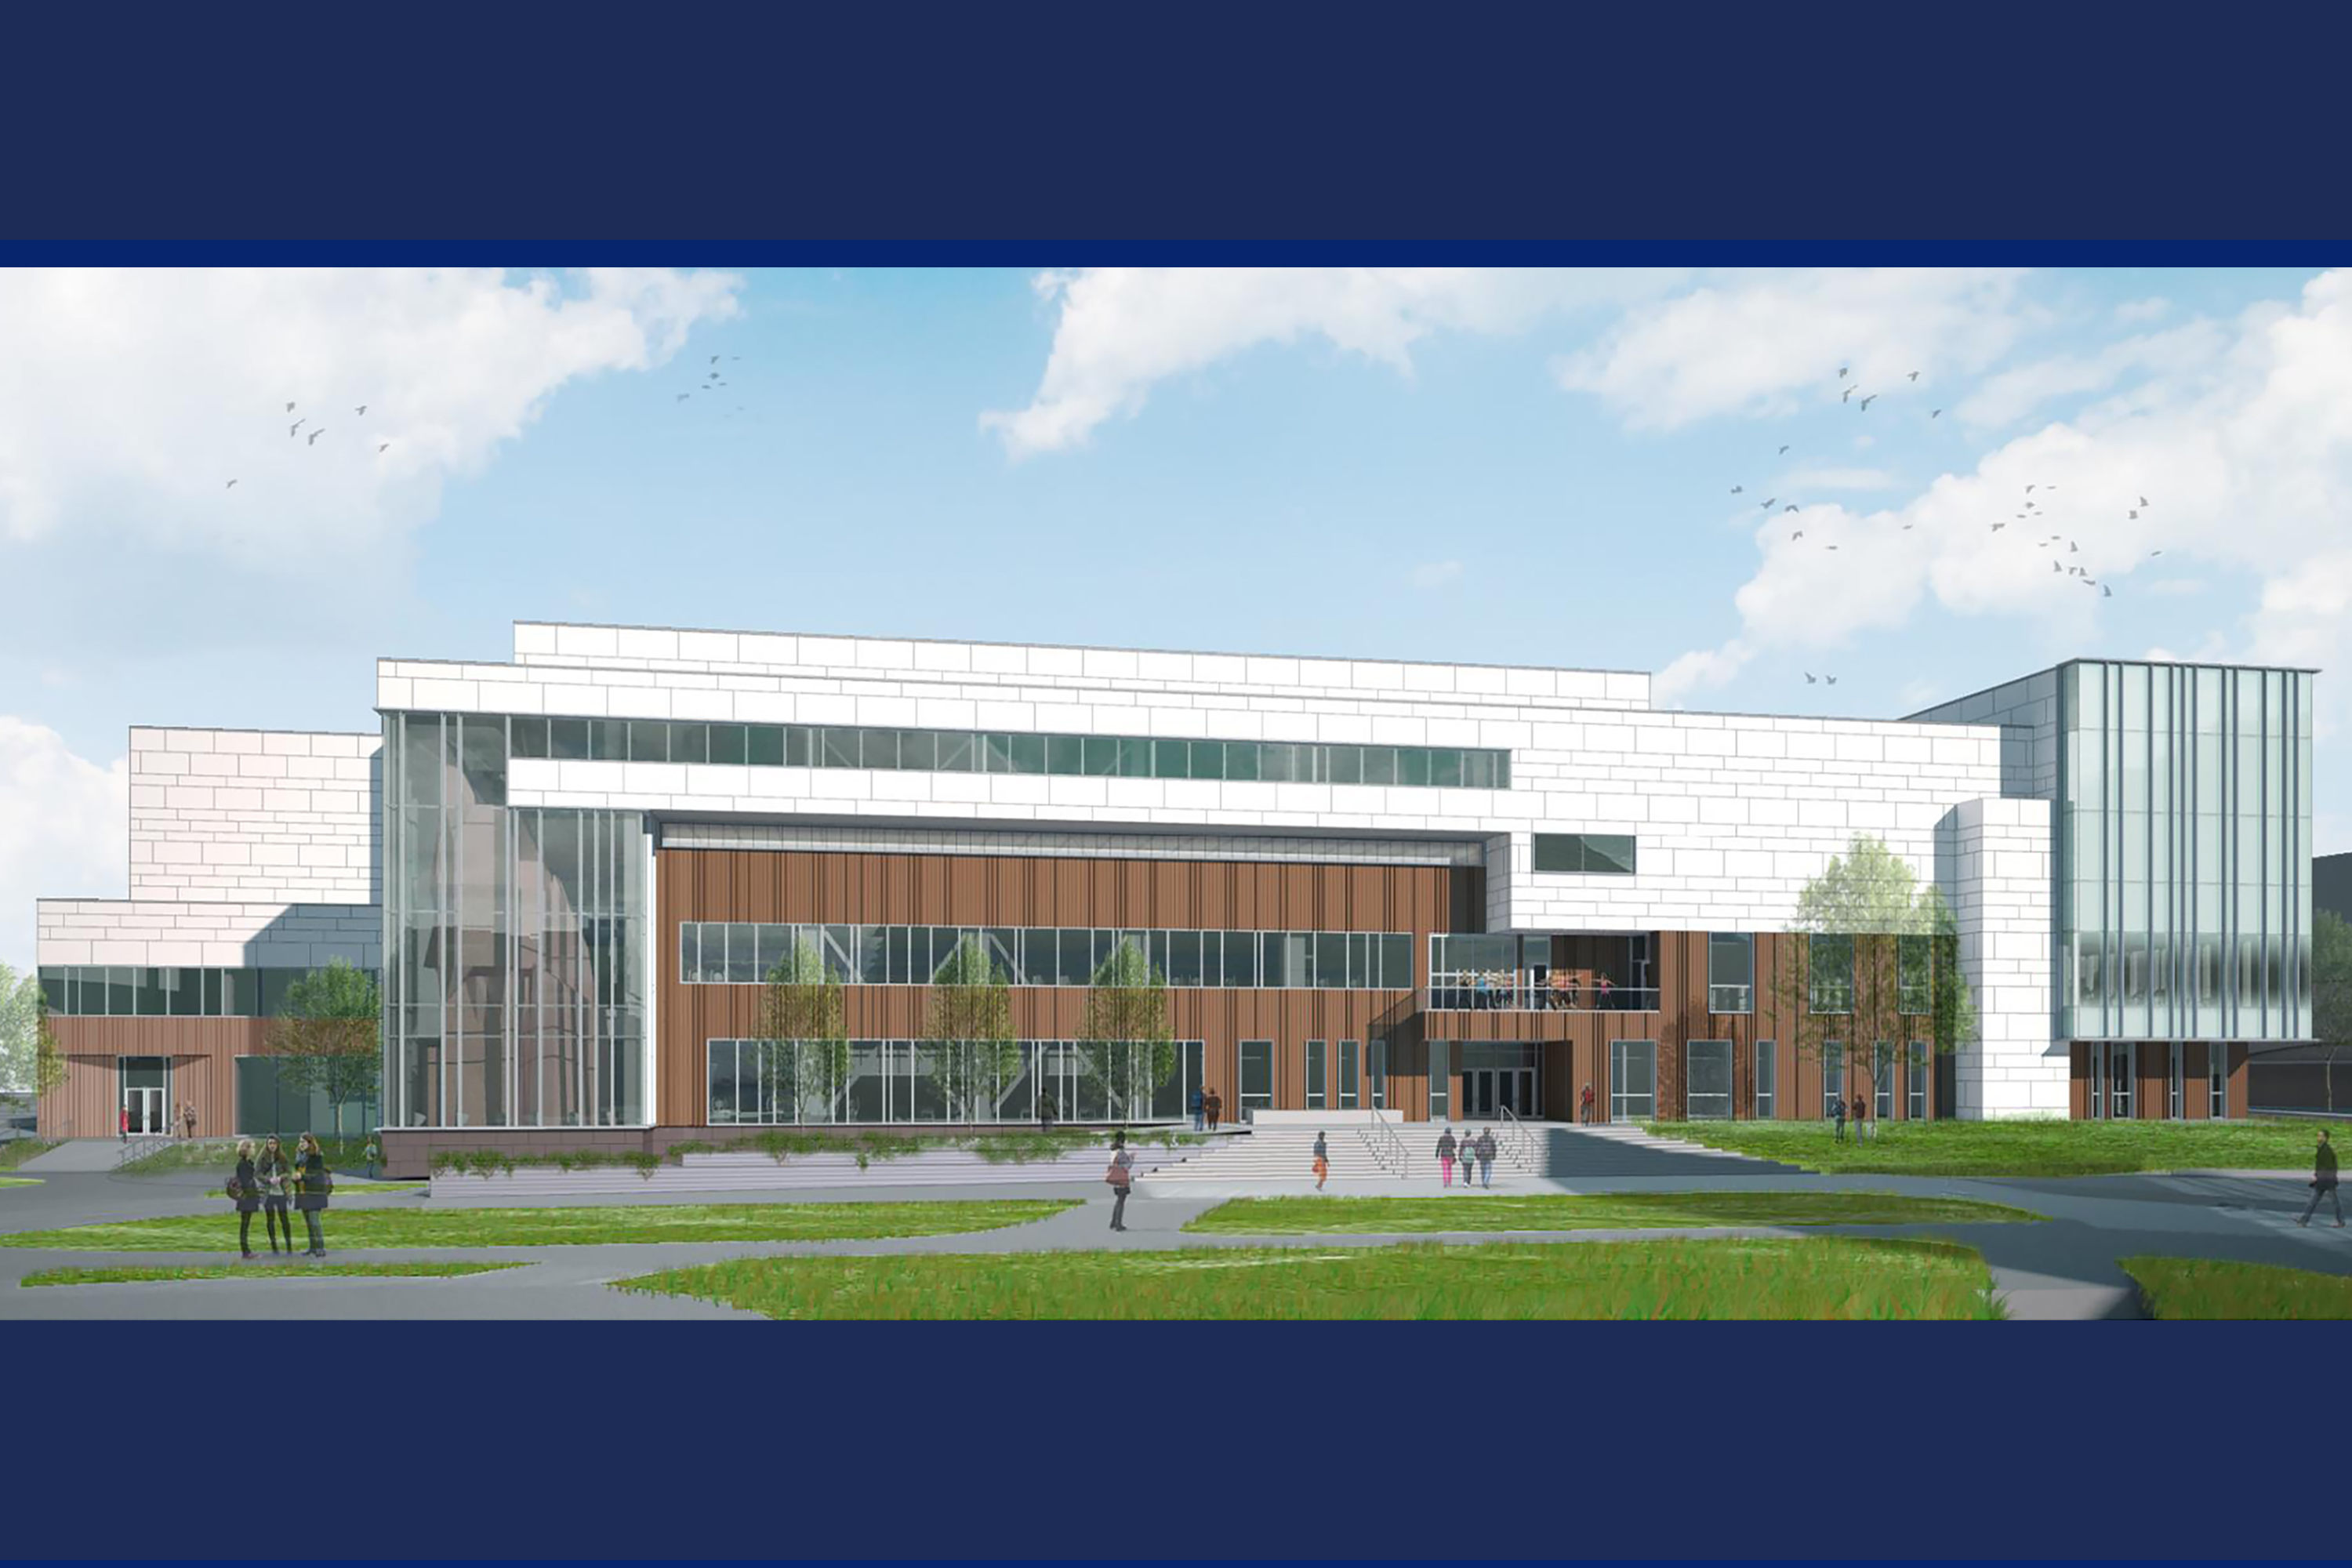 Summer construction ramps up at uconn uconn today for Exterior design company